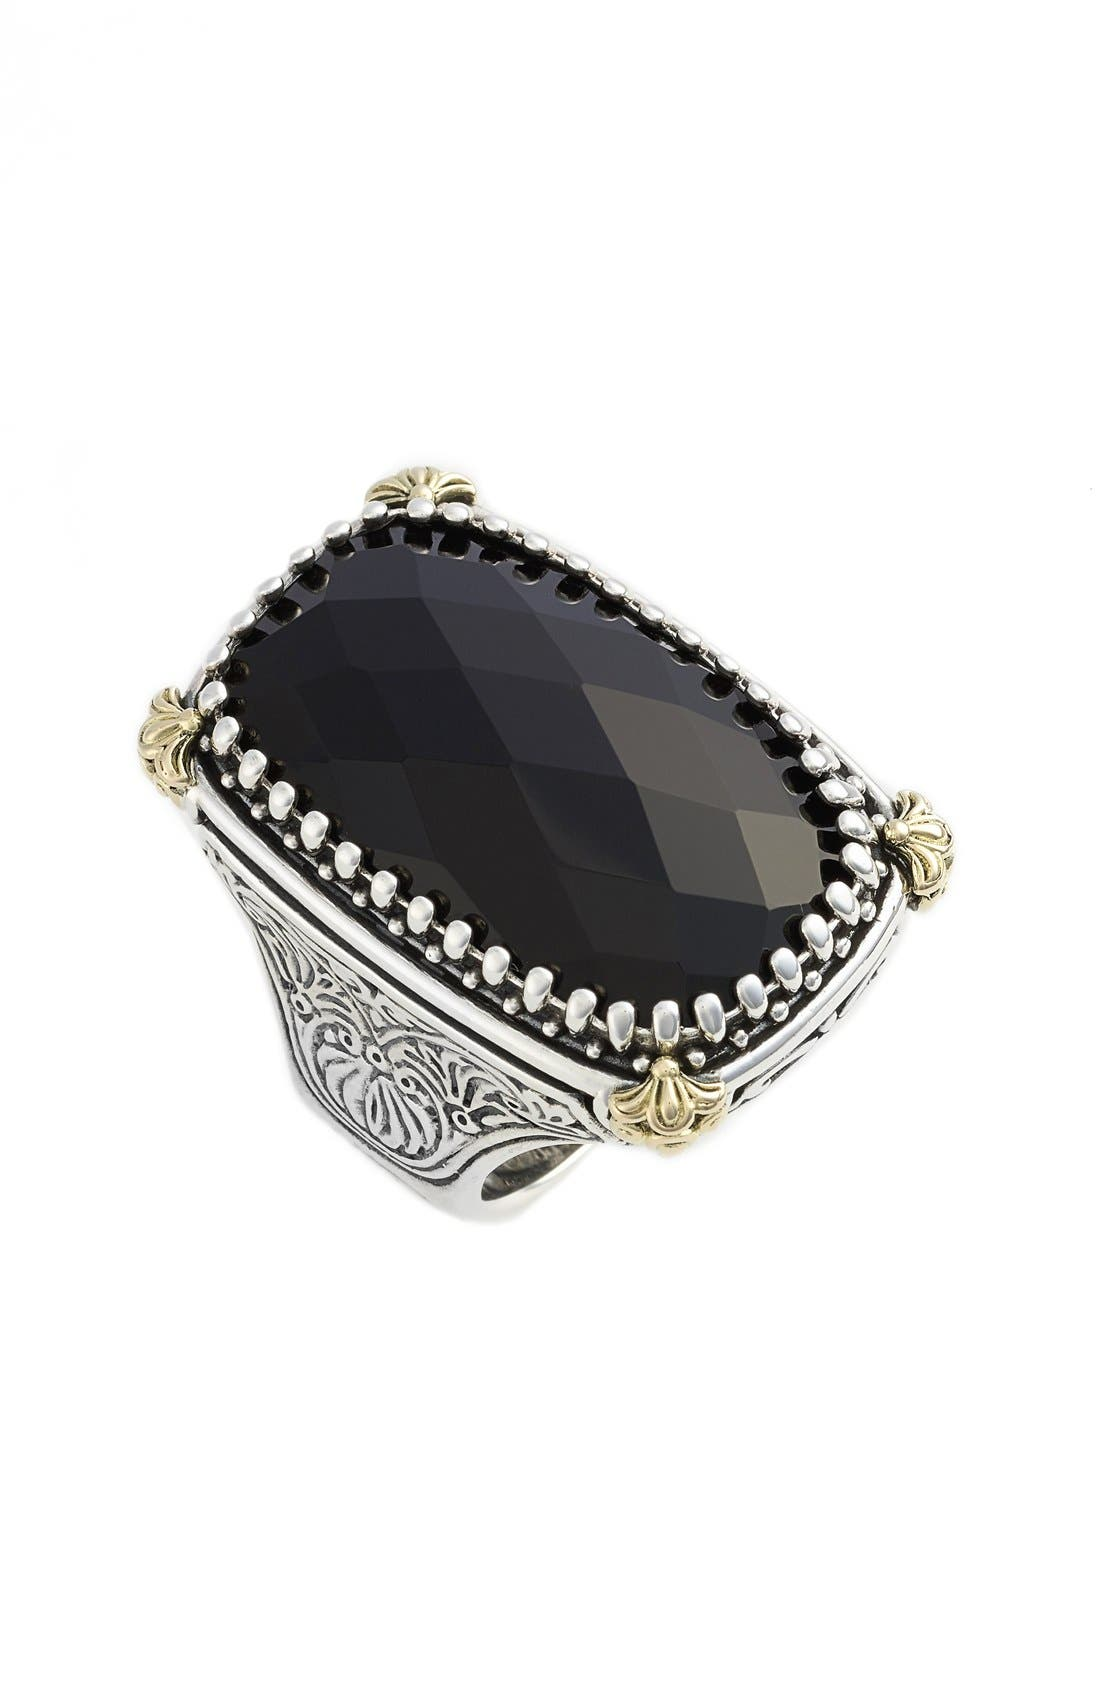 A faceted black onyx stone is framed by intricate 18-karat gold accents in a stunning sterling-silver ring inspired by the mystical Mediterranean night sky. Ornate etching embellishes each side of the band, ensuring the beautiful detail can be seen from all angles. Style Name: Konstantino \\\'Nykta\\\' Black Onyx Ring. Style Number: 5084317. Available in stores.